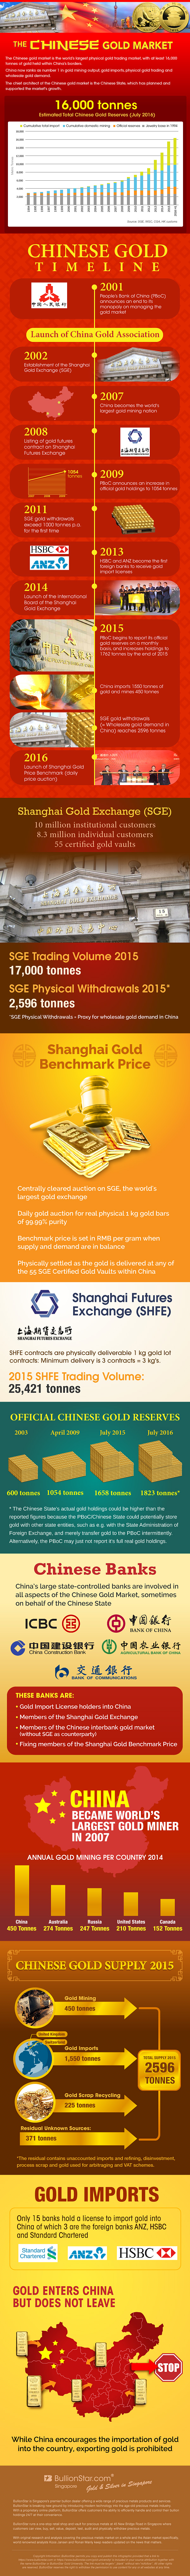 Infographic on the Chinese Gold Market which is the largest gold market in the world